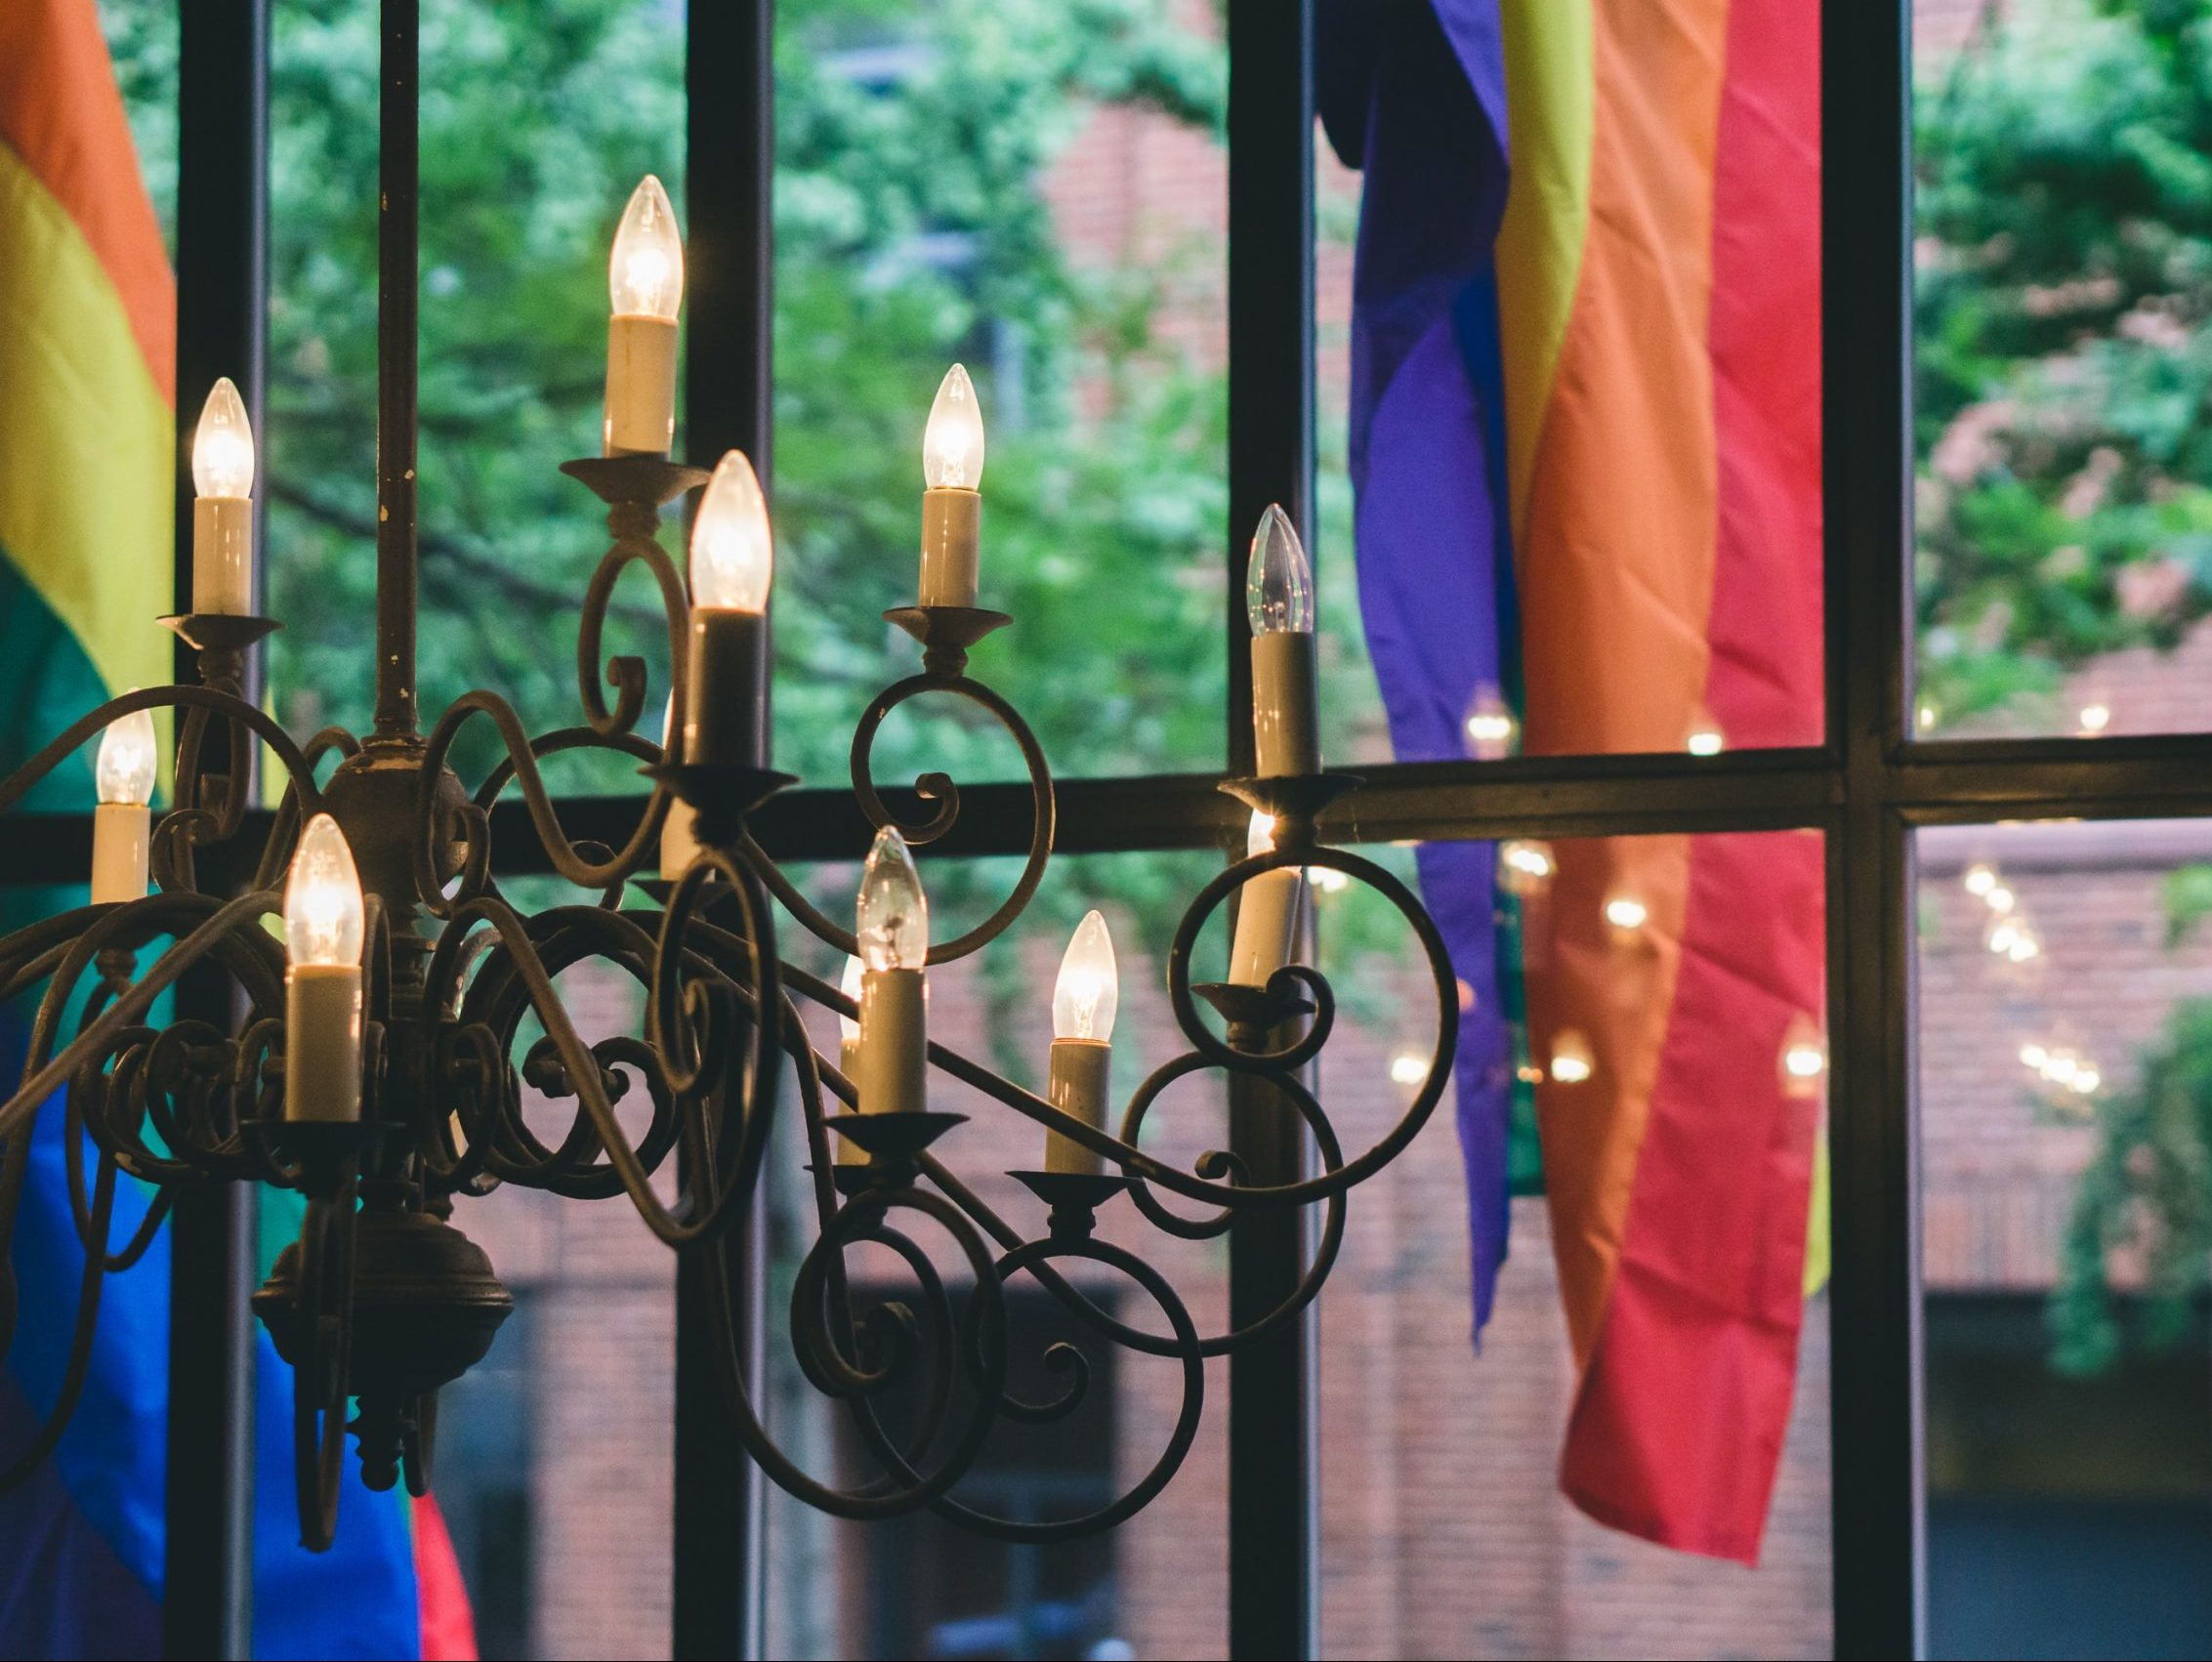 In an article about lesbian bars, a chandelier in front of a window looking out to pride flags